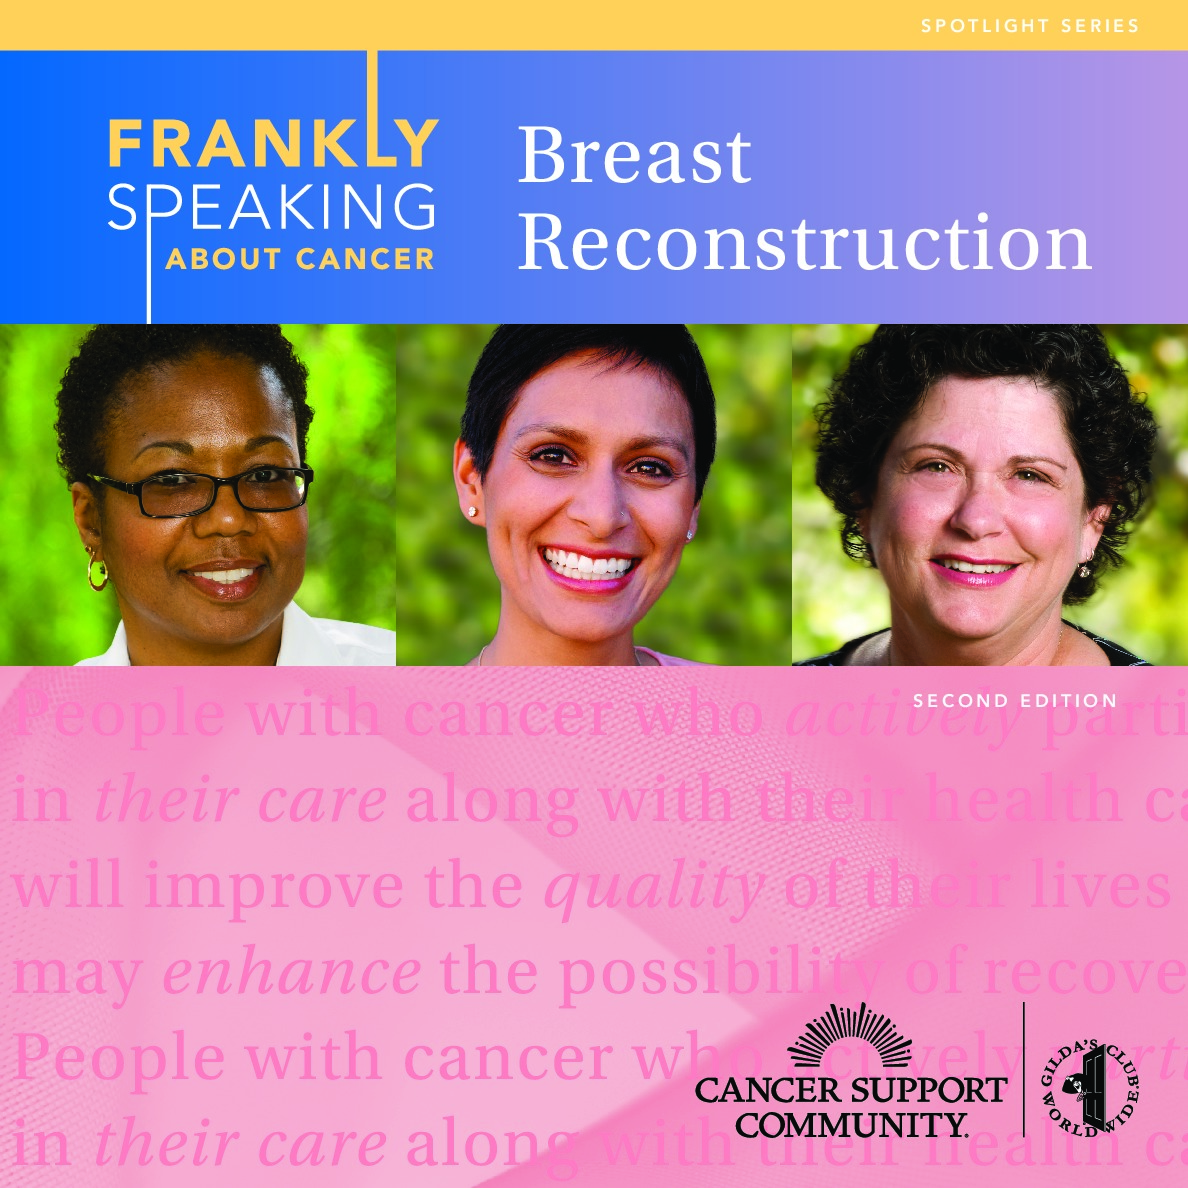 Frankly Speaking About Cancer: Breast Reconstruction